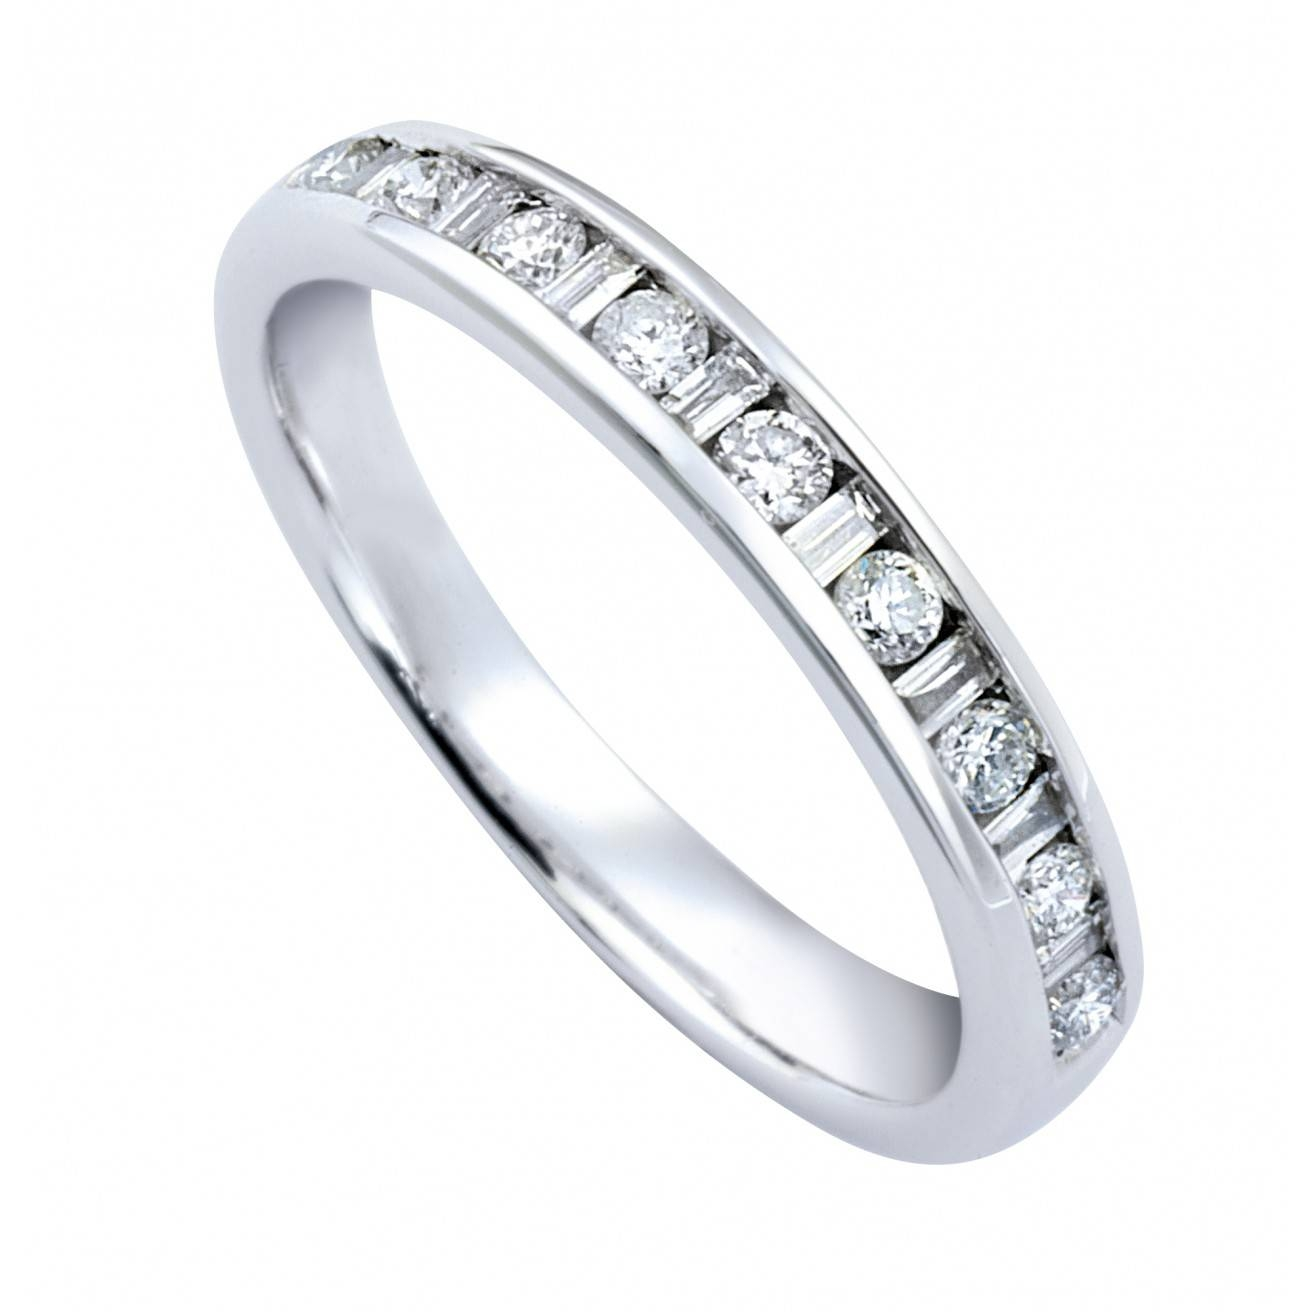 Buy A Diamond Wedding Ring Online – Fraser Hart Throughout Diamond Band Wedding Rings (View 3 of 15)